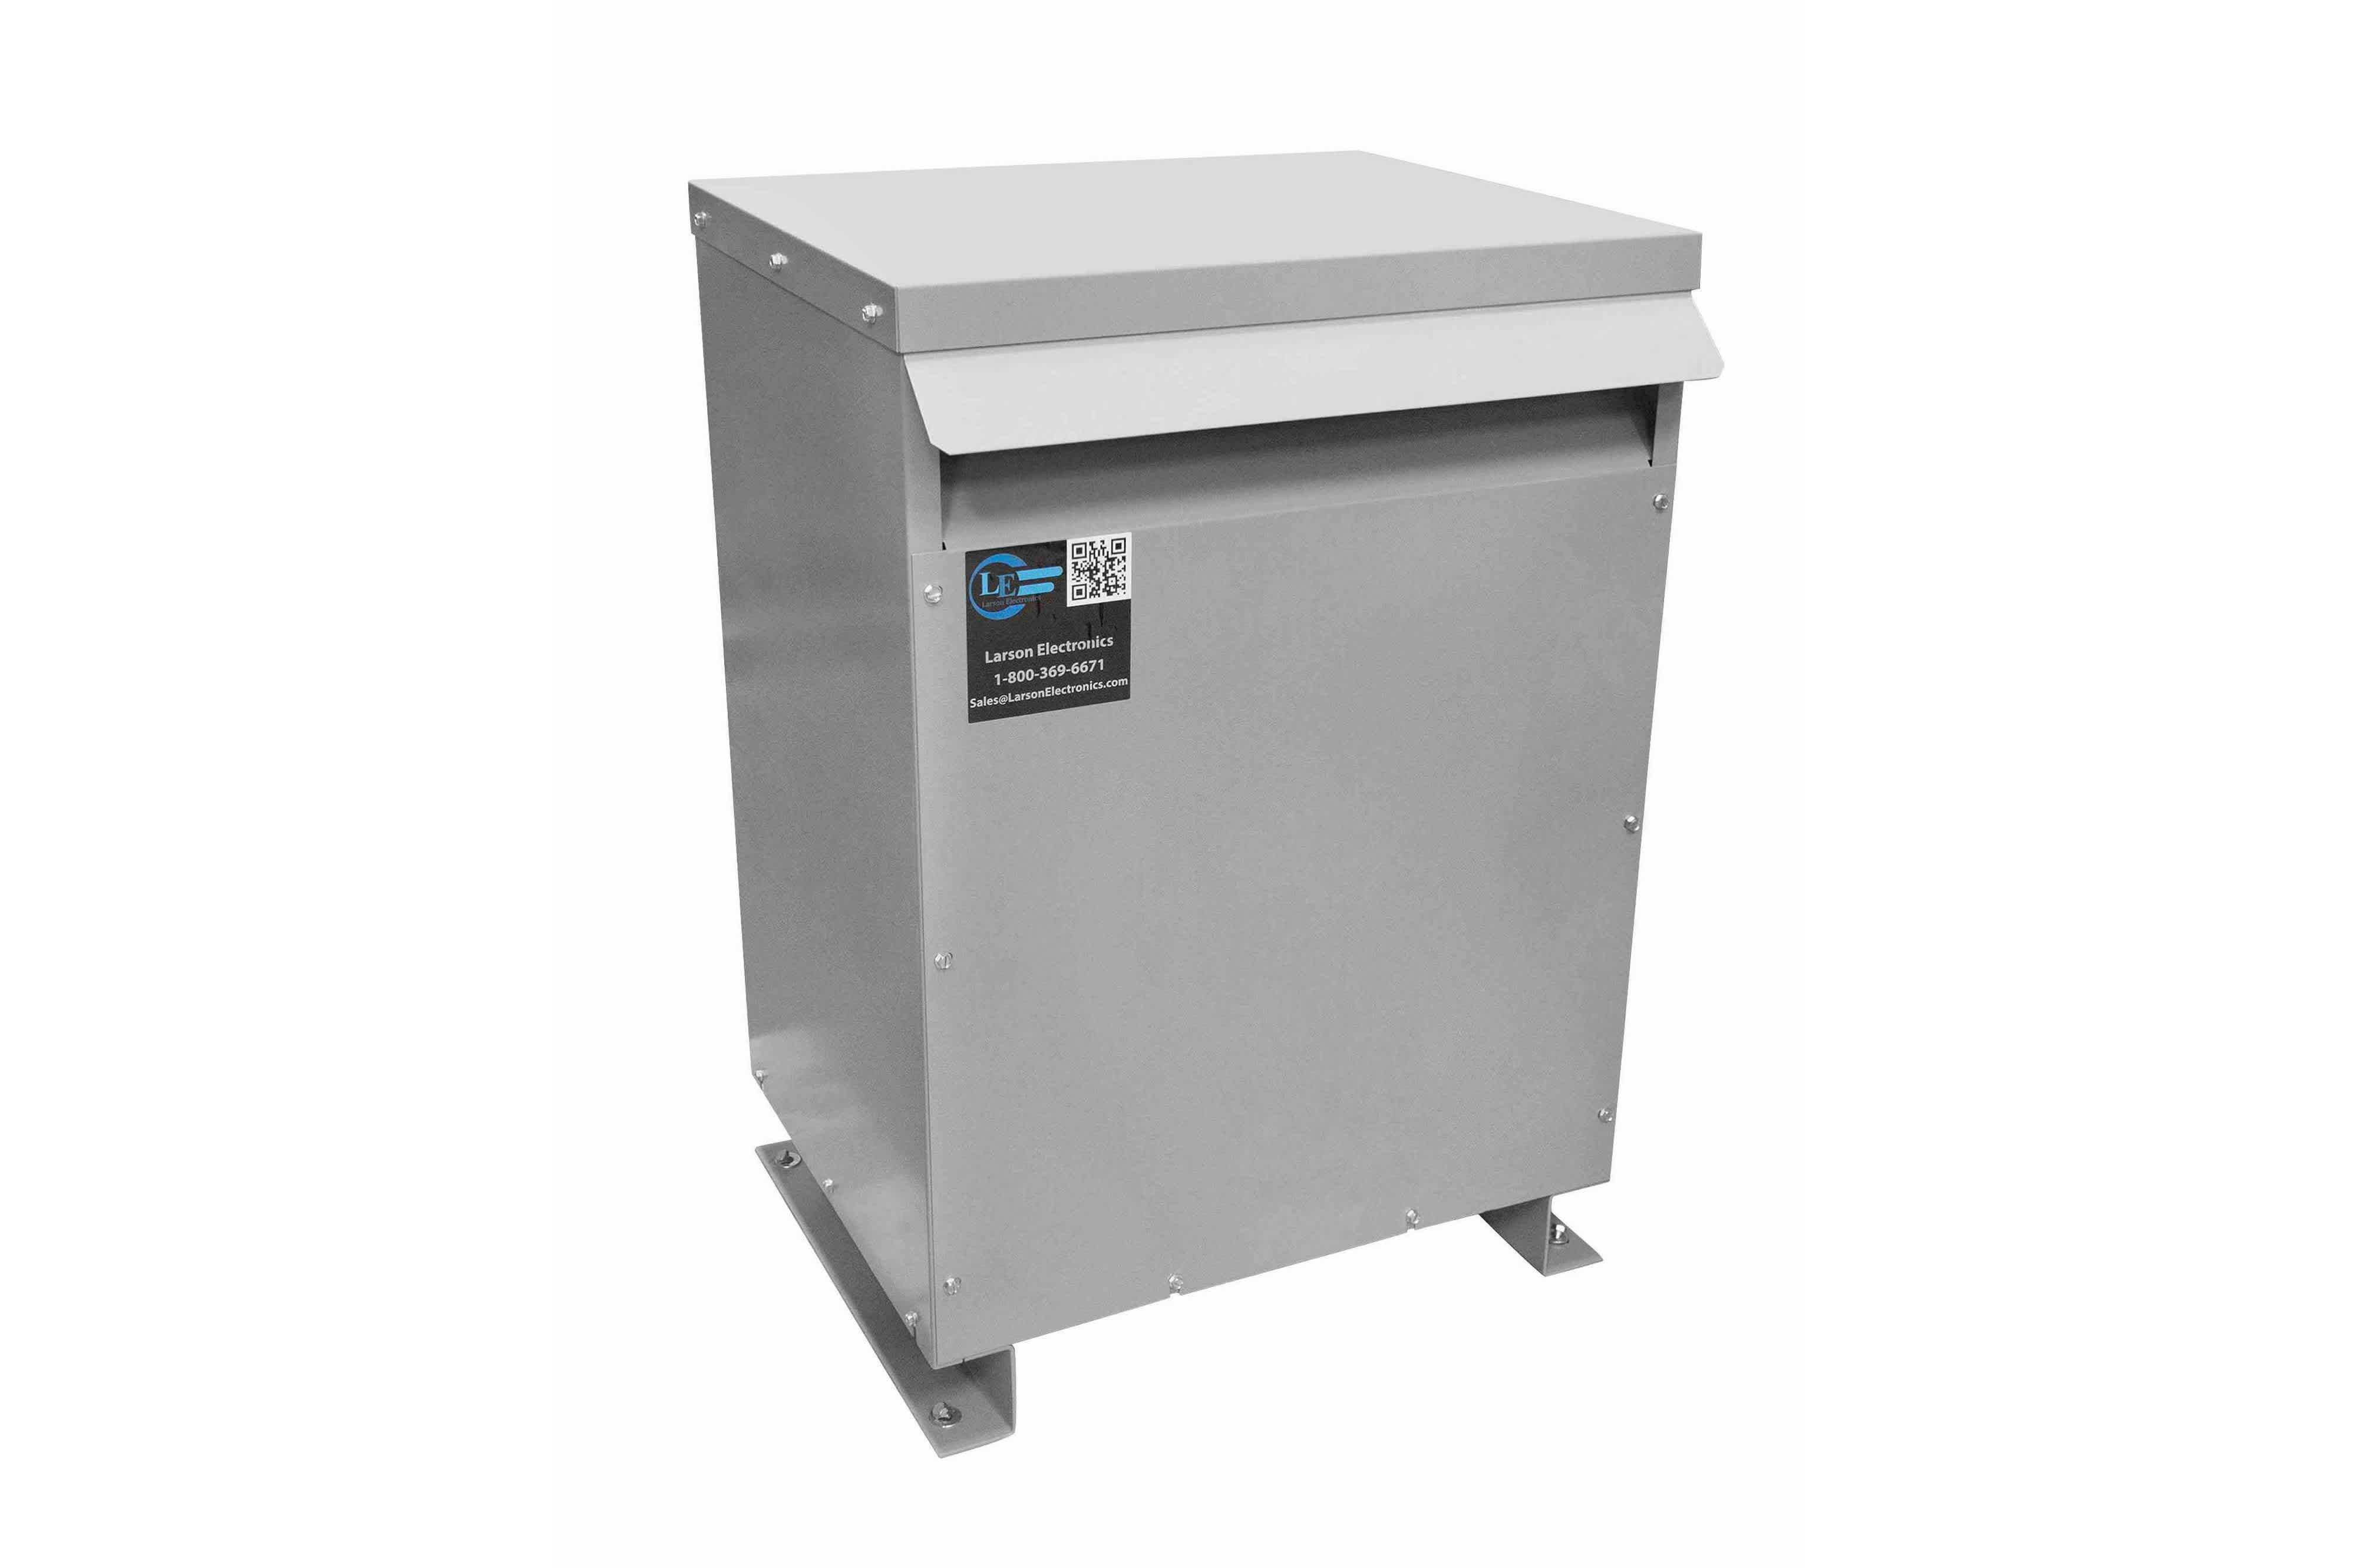 125 kVA 3PH Isolation Transformer, 208V Wye Primary, 400Y/231 Wye-N Secondary, N3R, Ventilated, 60 Hz